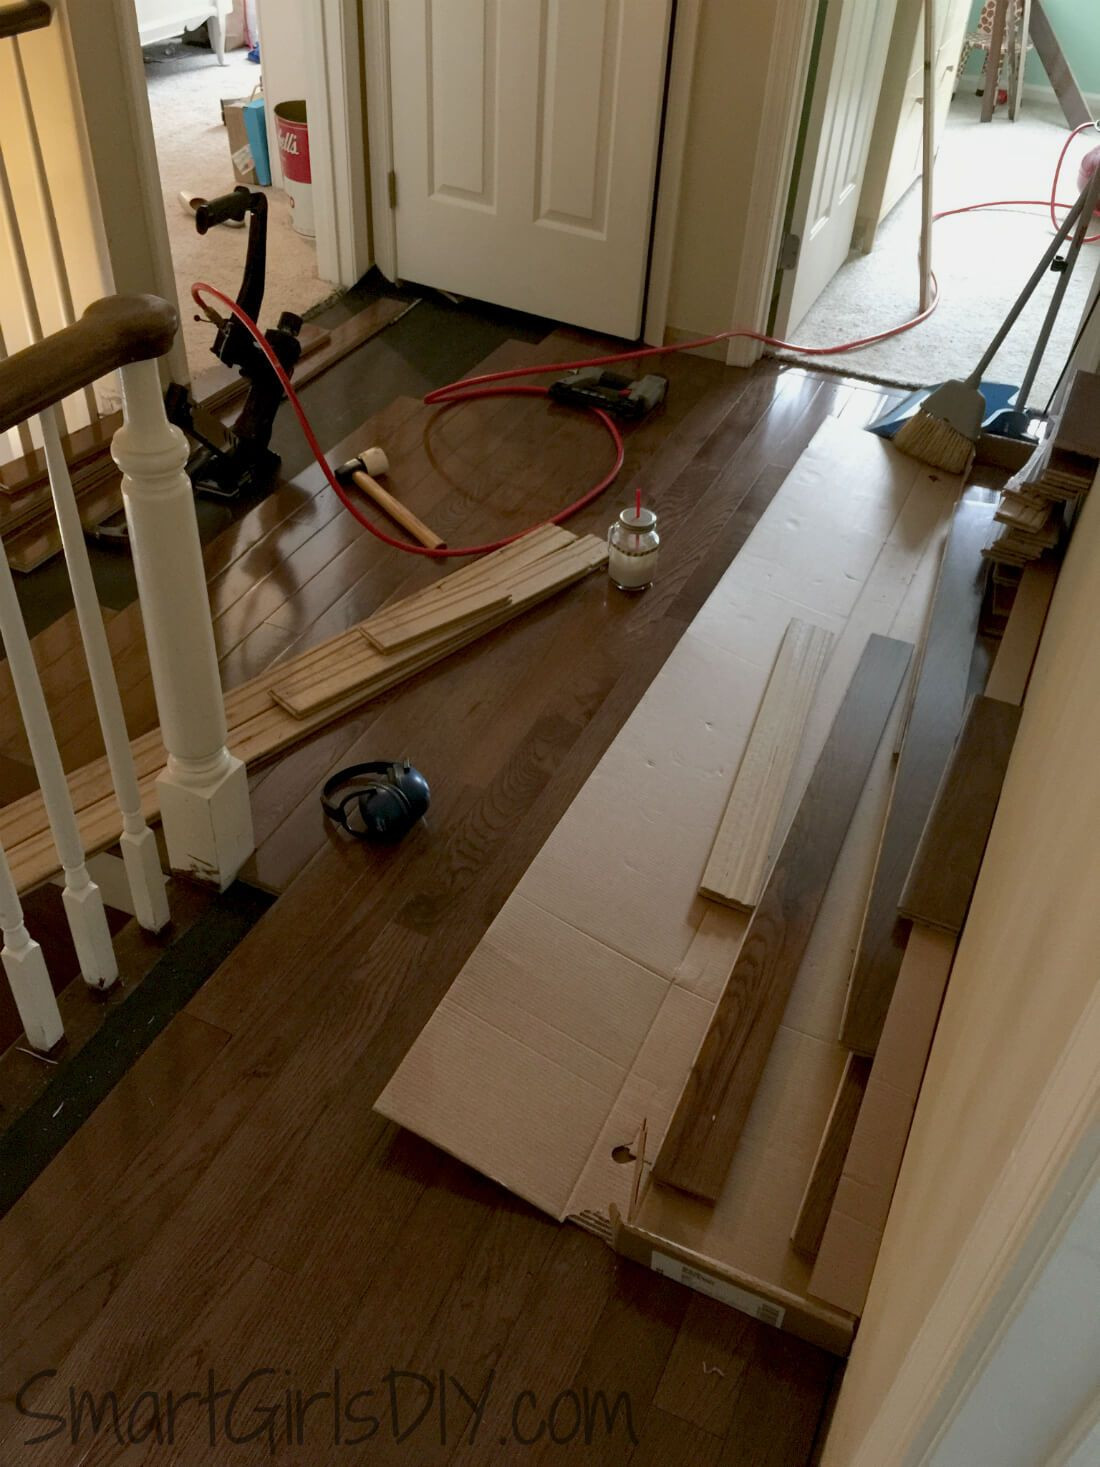 How Should Hardwood Floor Run Of Upstairs Hallway 1 Installing Hardwood Floors In How to Install Hardwood Floor All by Yourself